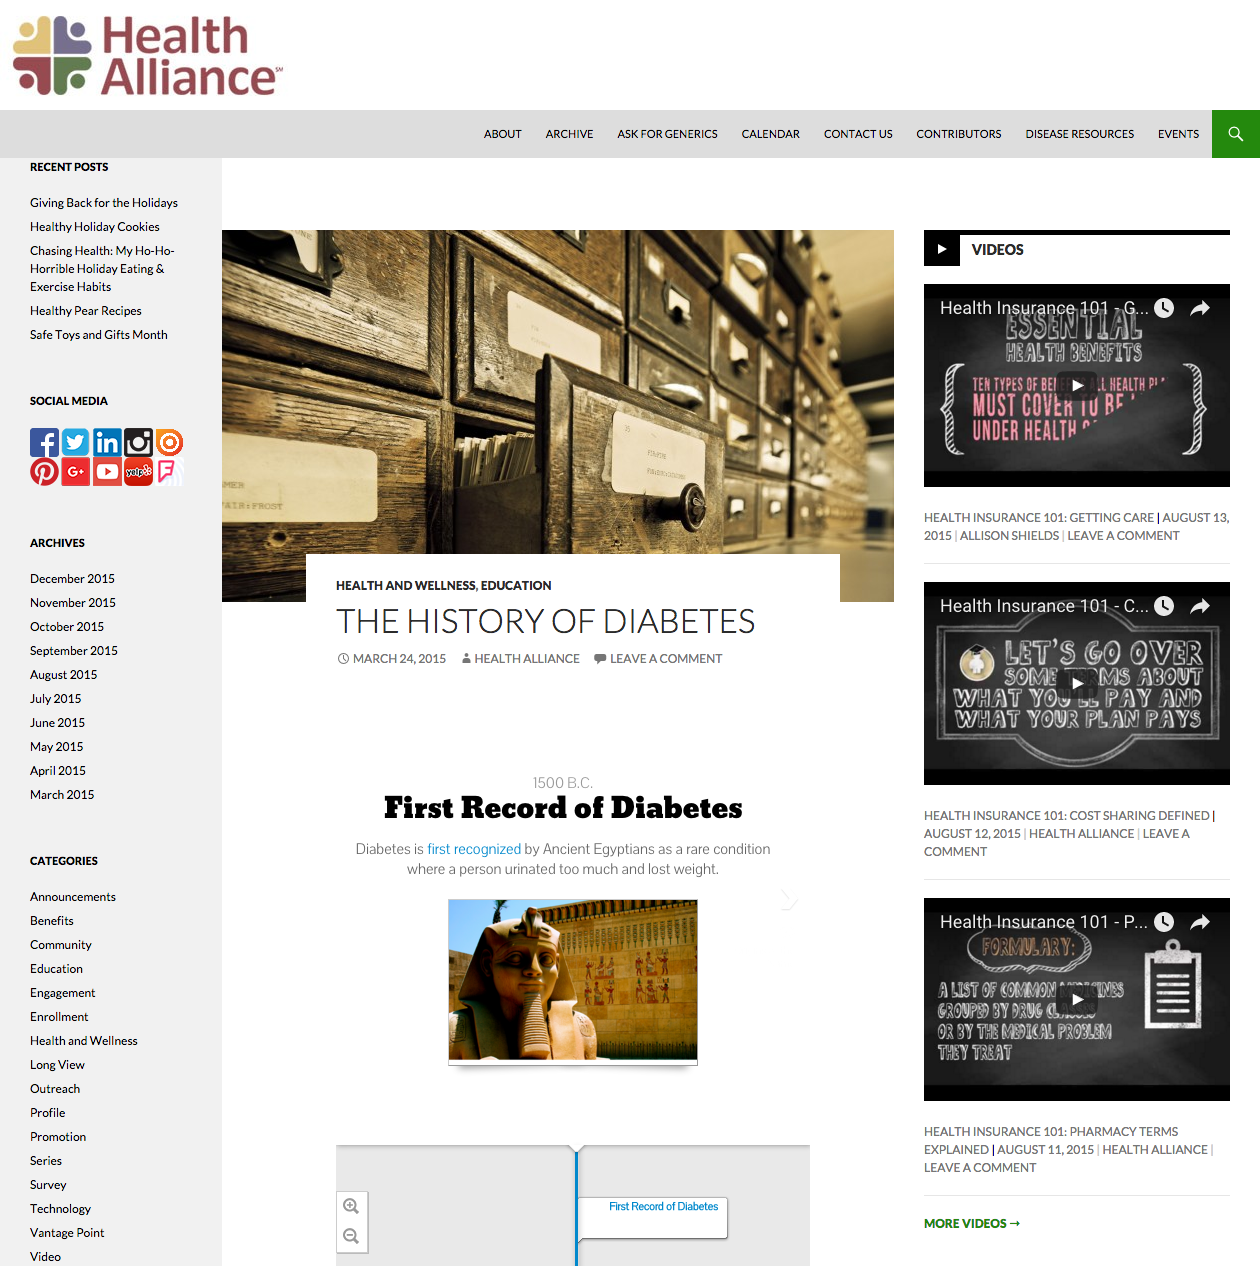 The History of Diabetes Blog Post